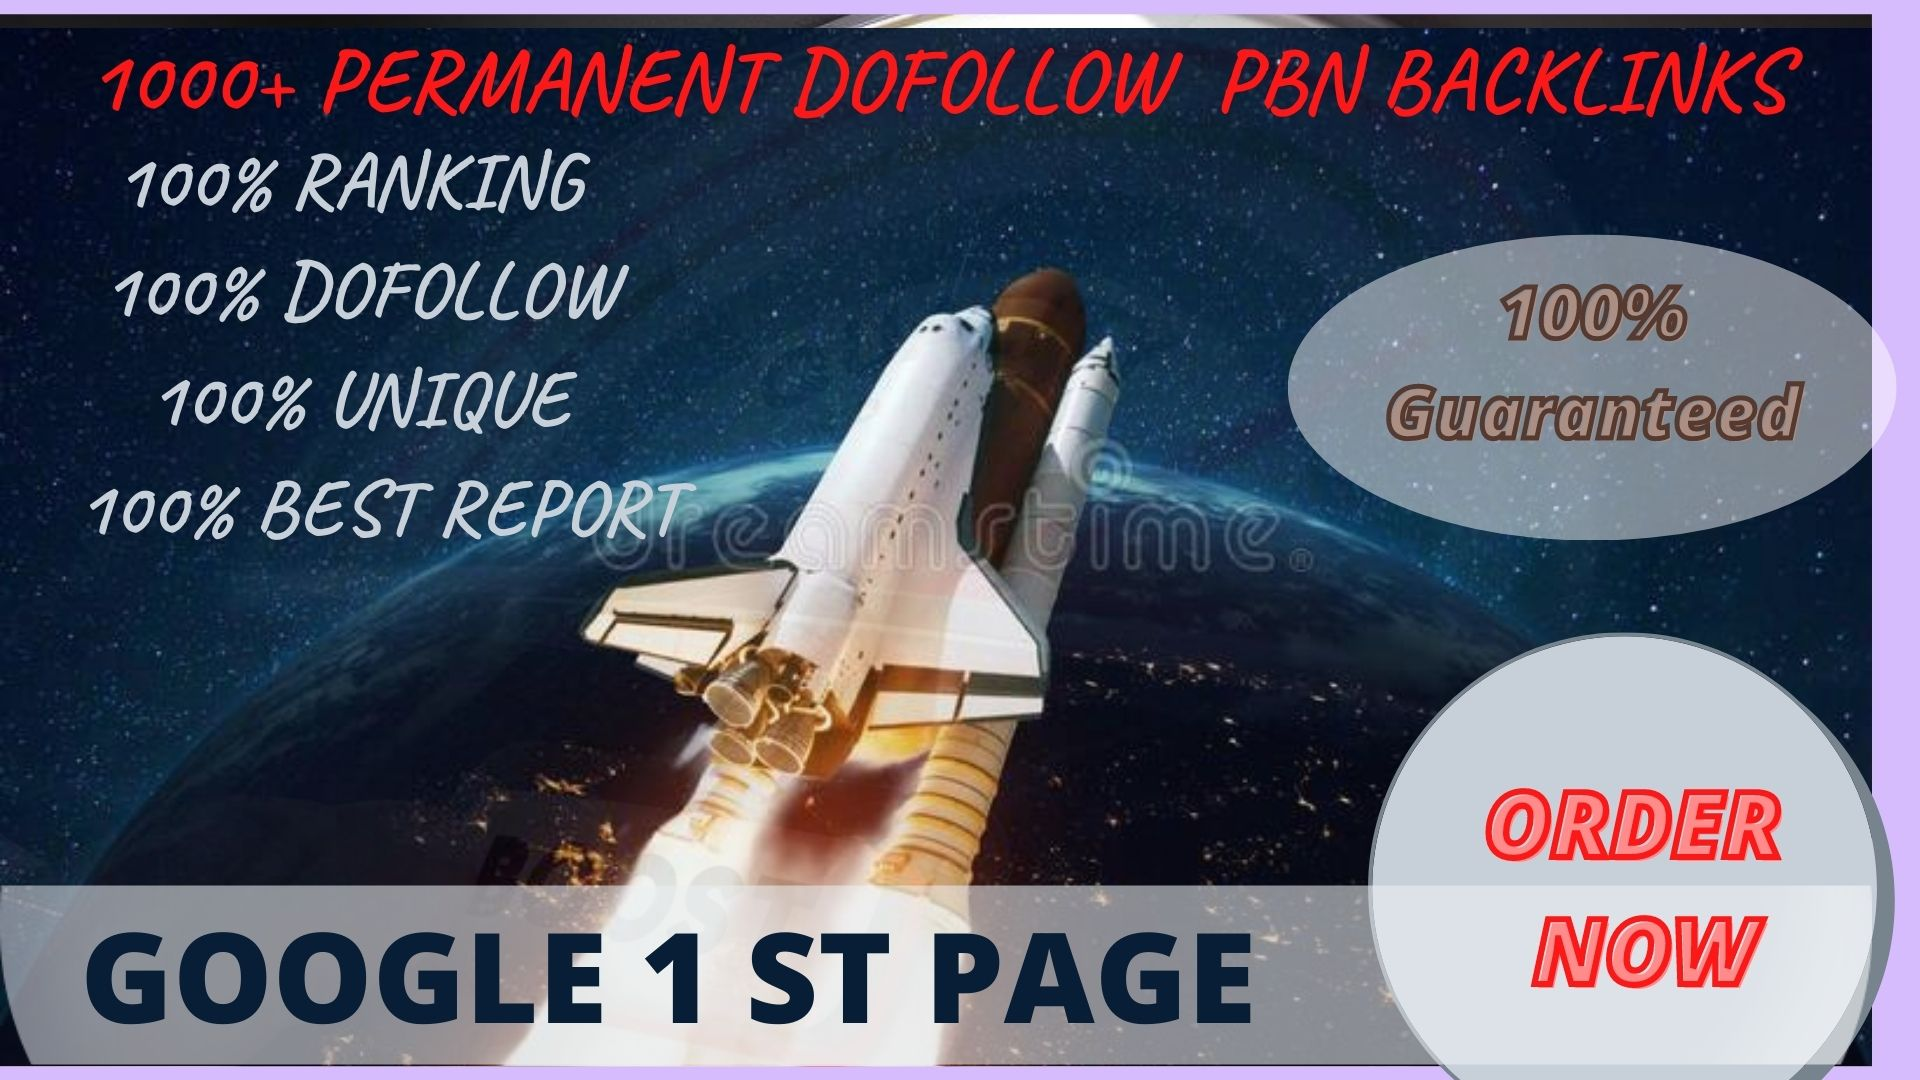 Get 1000+ Permanent Dofollow Homepage pbn Backlinks. Letest update 2021. BUY 1 GET 1 FREE